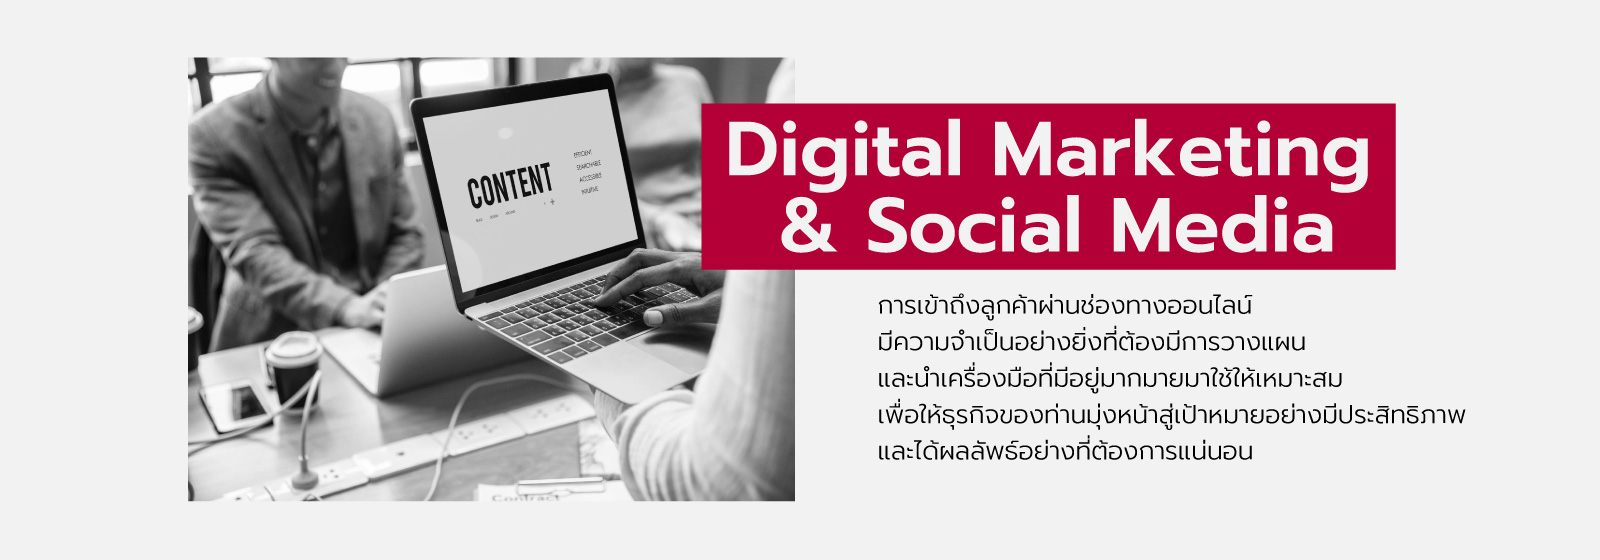 Digital Marketing & Social media